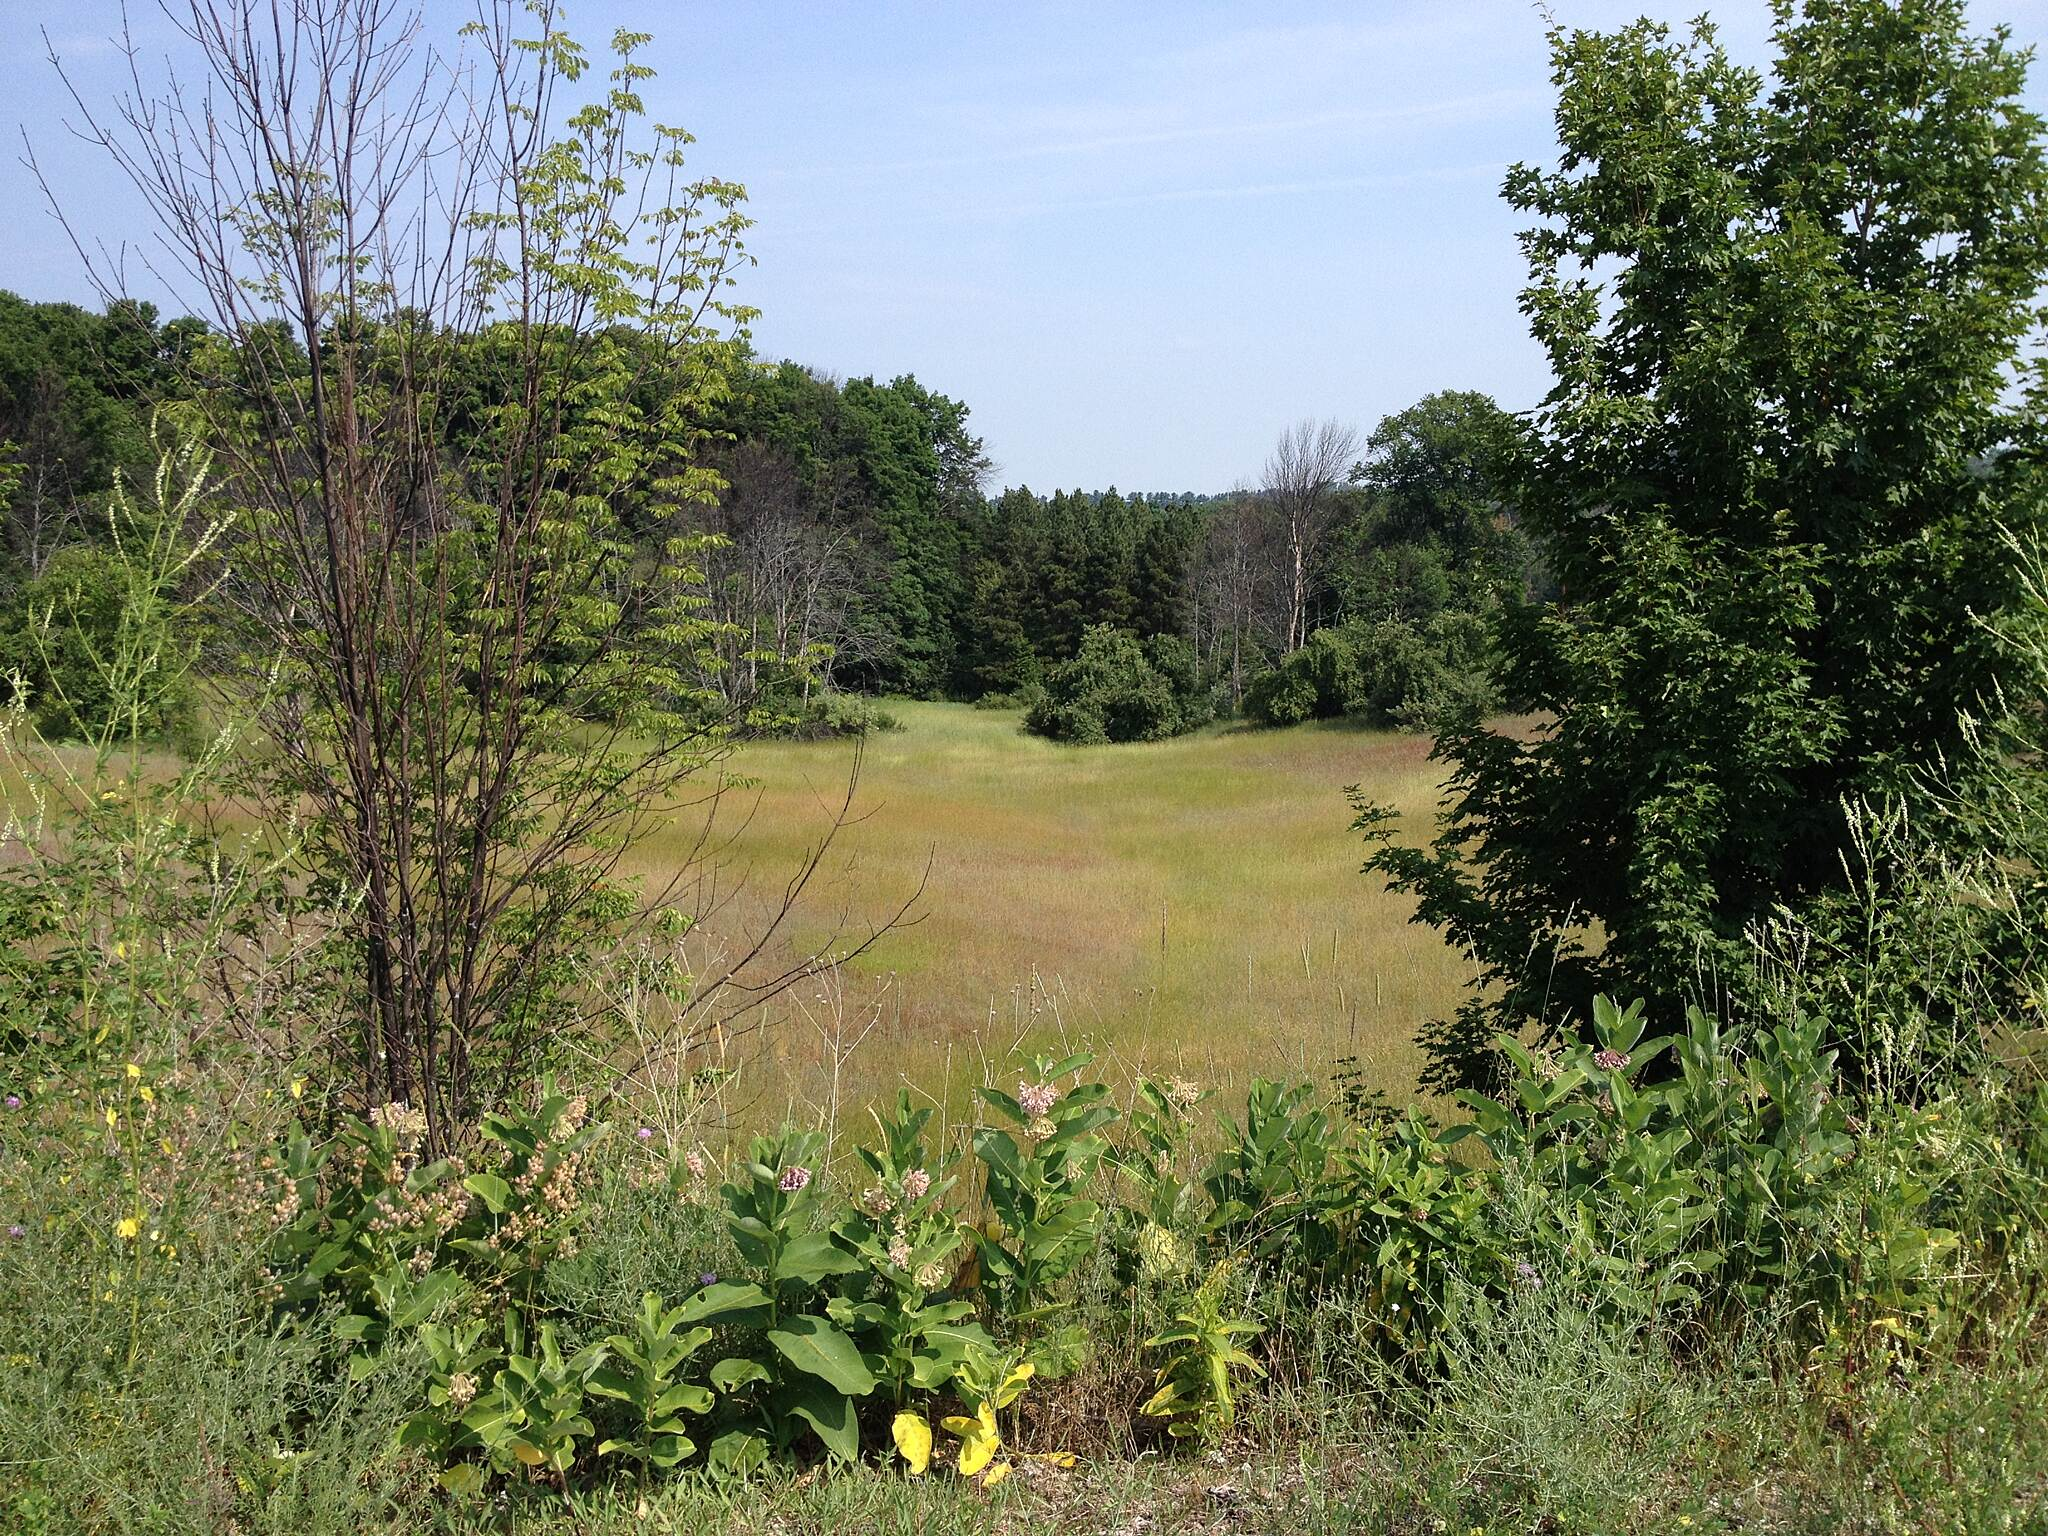 Leelanau Trail 7/2014 Trail runs through beautiful meadows and cherry orchards. 7/2014